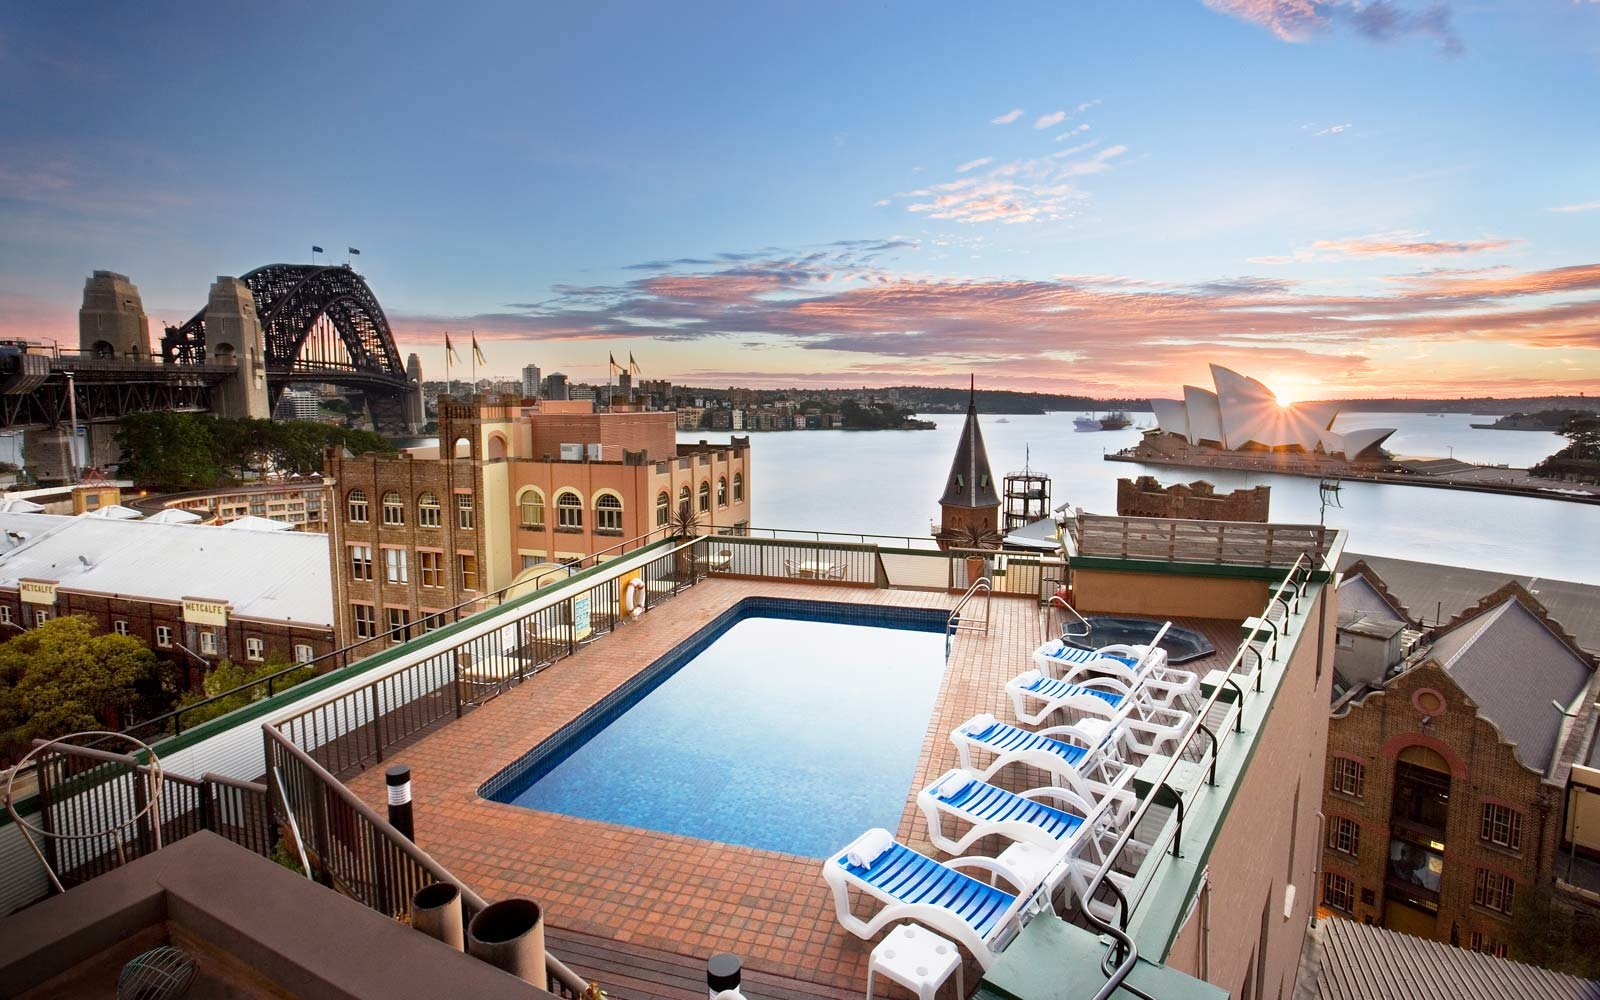 Sydney Hotels | Book Sydney Accommodation with AccorHotels